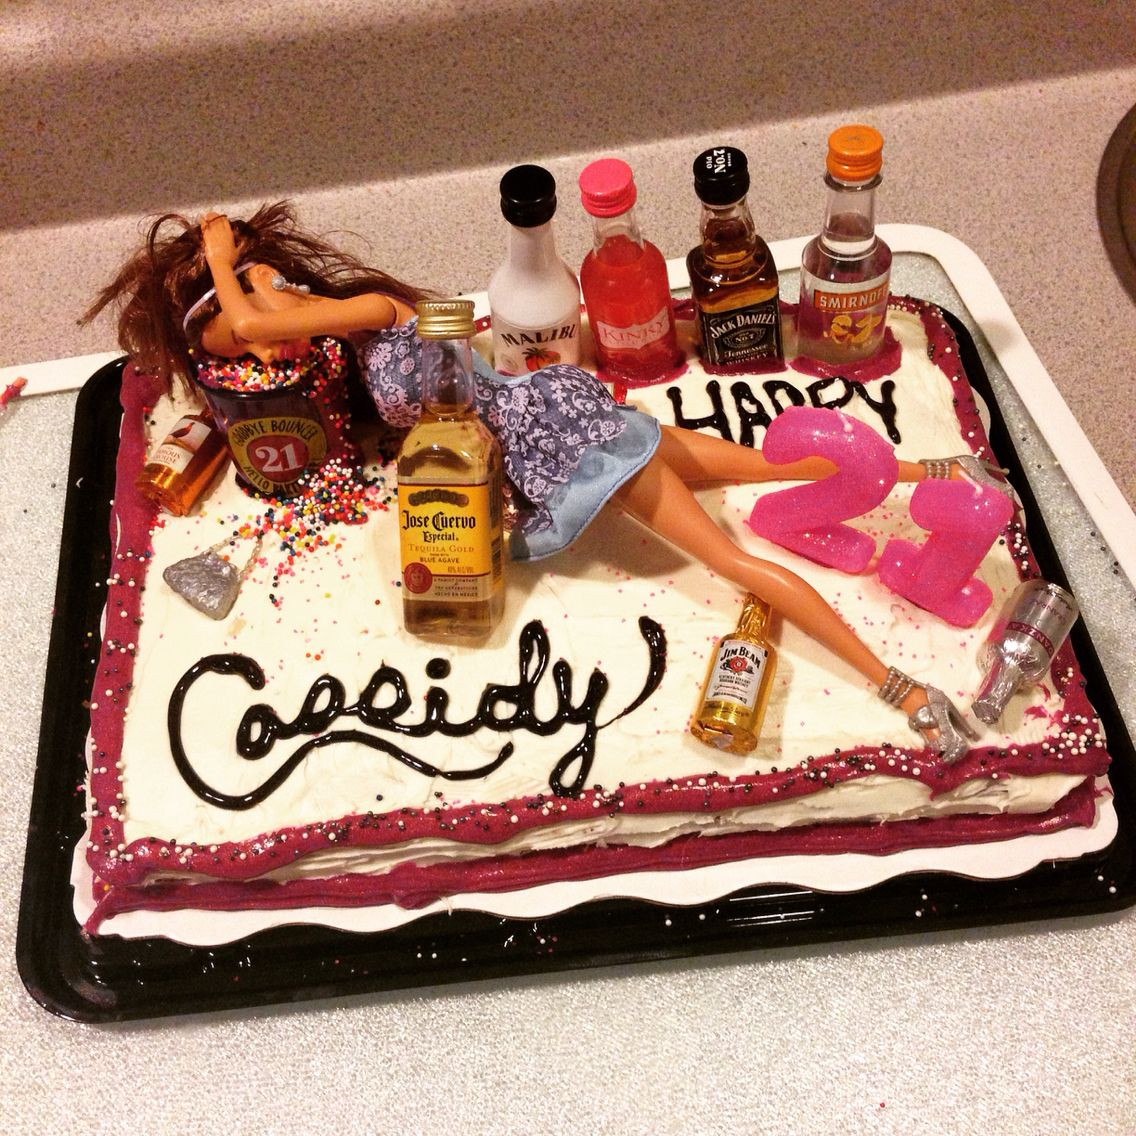 21st Birthday Barbie Cake I Made For My Friend! Used A 21